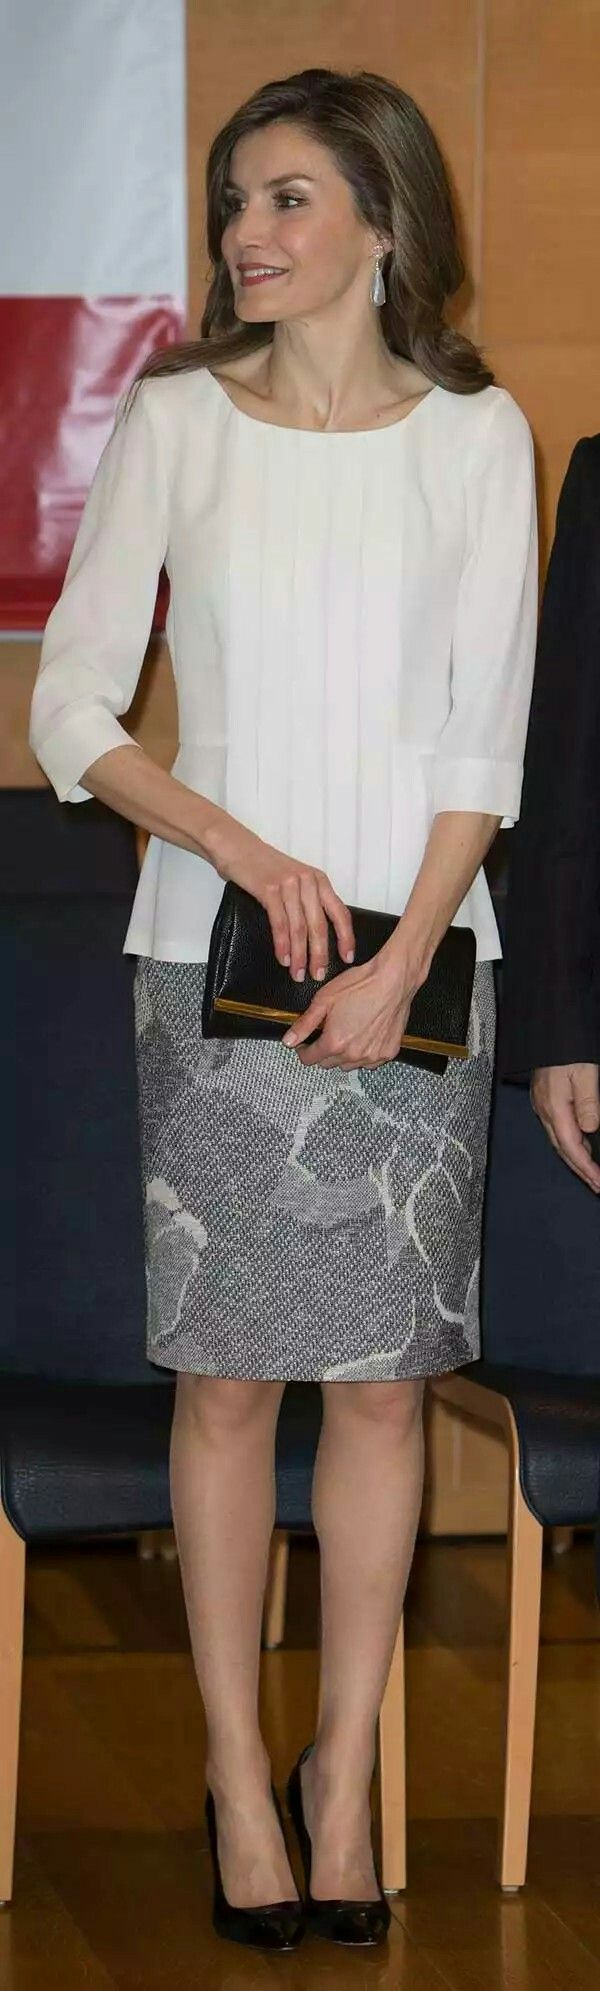 Queen Letizia of Spain visits the Keio University Hospital in Tokyo, Japan. King Felipe and Queen Letizia are on a state visit to Japan. April 6, 2017.